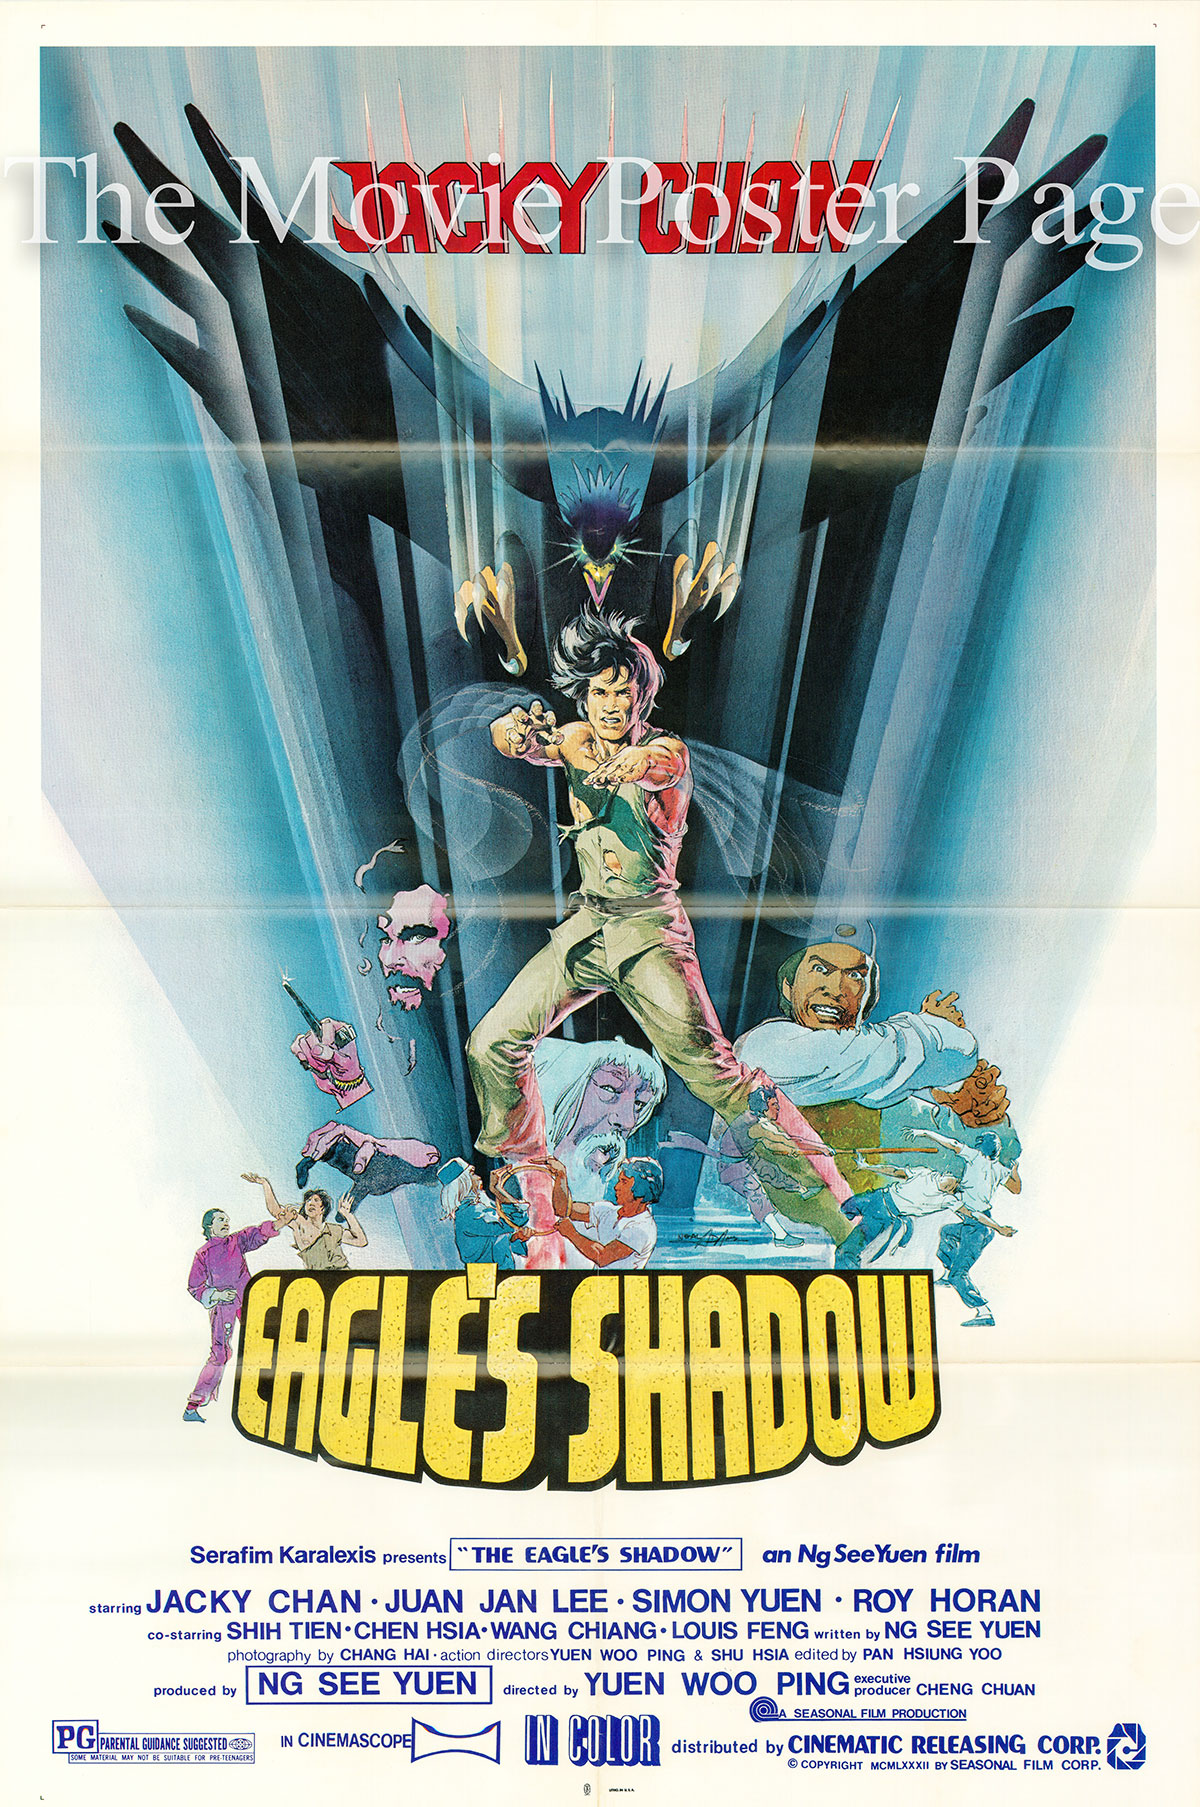 Pictured is a US one-sheet promotional poster for a 1982 rerelease of the 1978 Woo-Ping Yuen film Eagles Shadow starring Jackie Chan as Chien Fu.